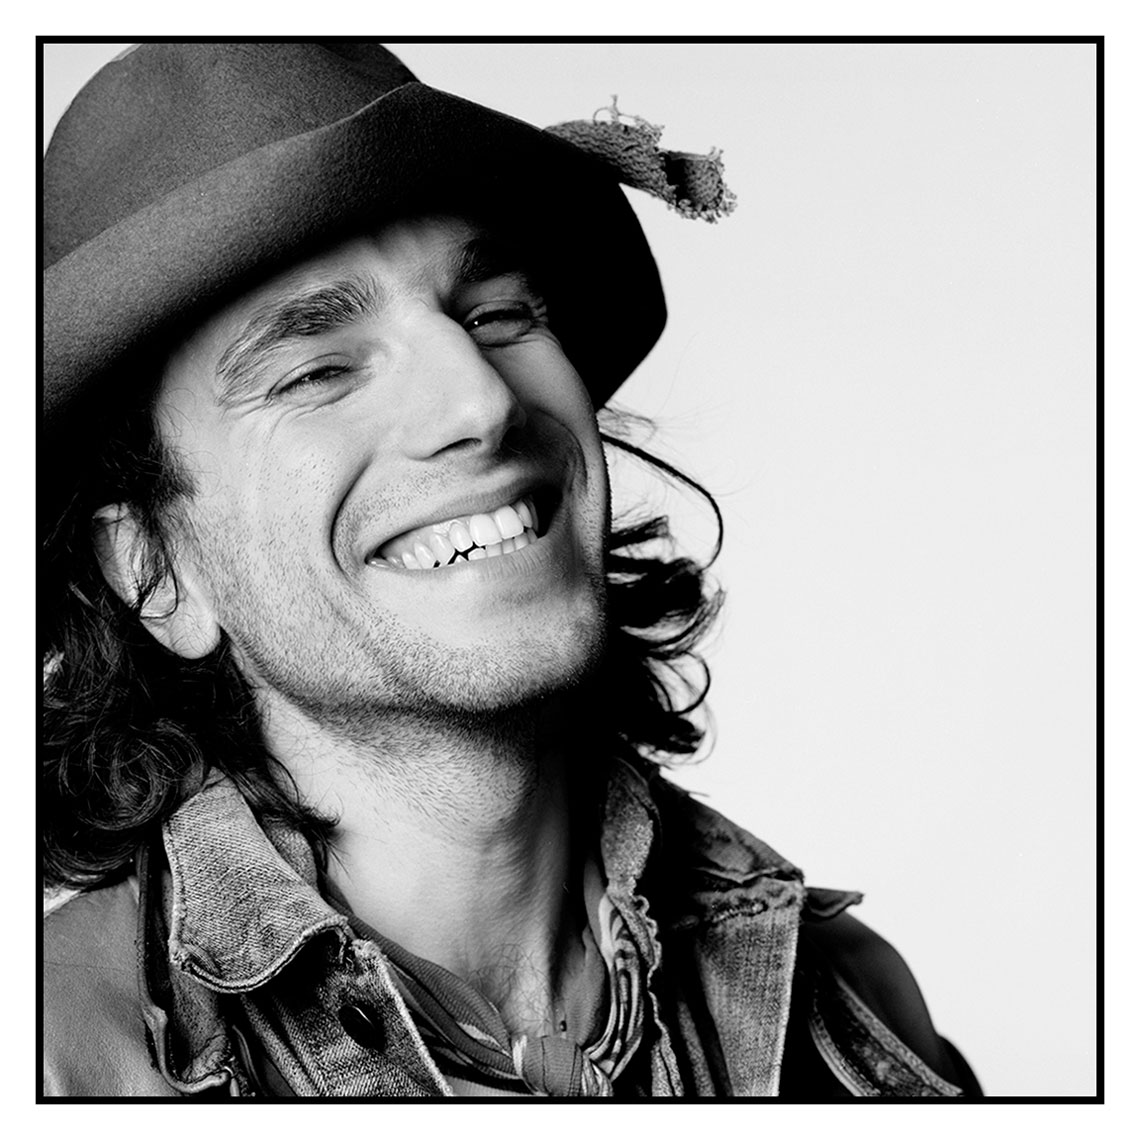 daniel-day-lewis-68-1988mf